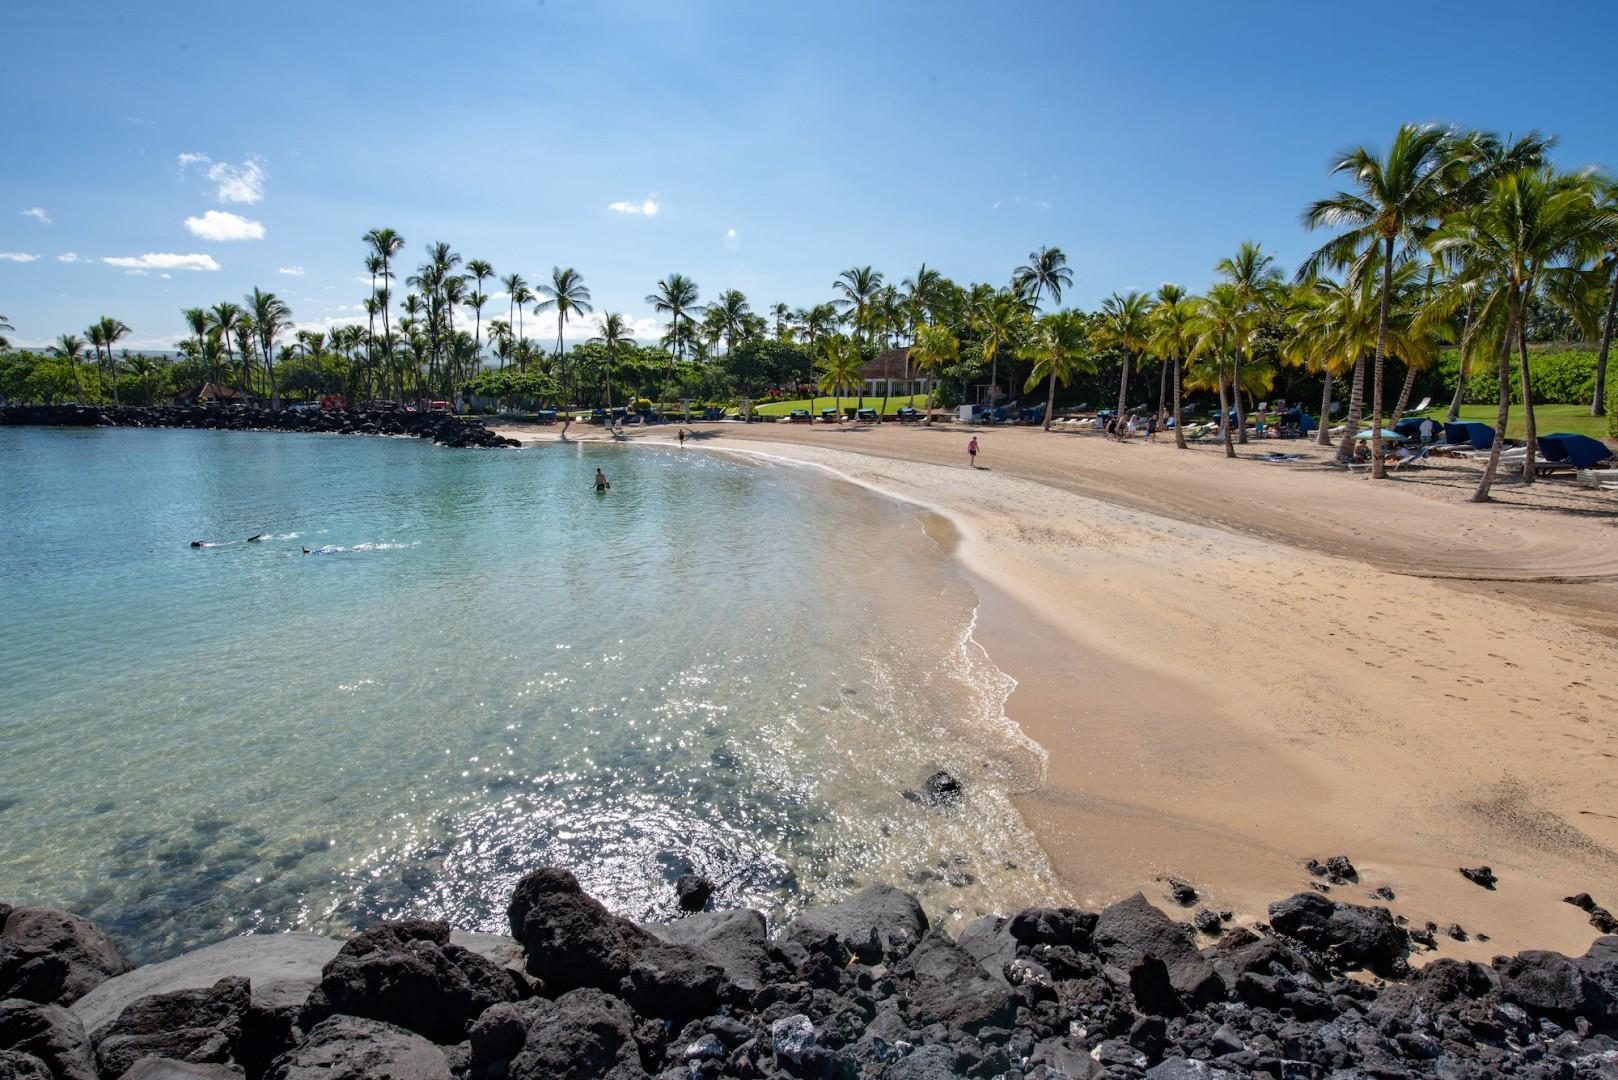 Enjoy convenient access to the Mauna Lani Beach Club, with beach lounge chairs, Napua Restaurant, excellent snorkeling, and ocean gear rentals. A key card is included with your rental for entry and parking in the private parking area.